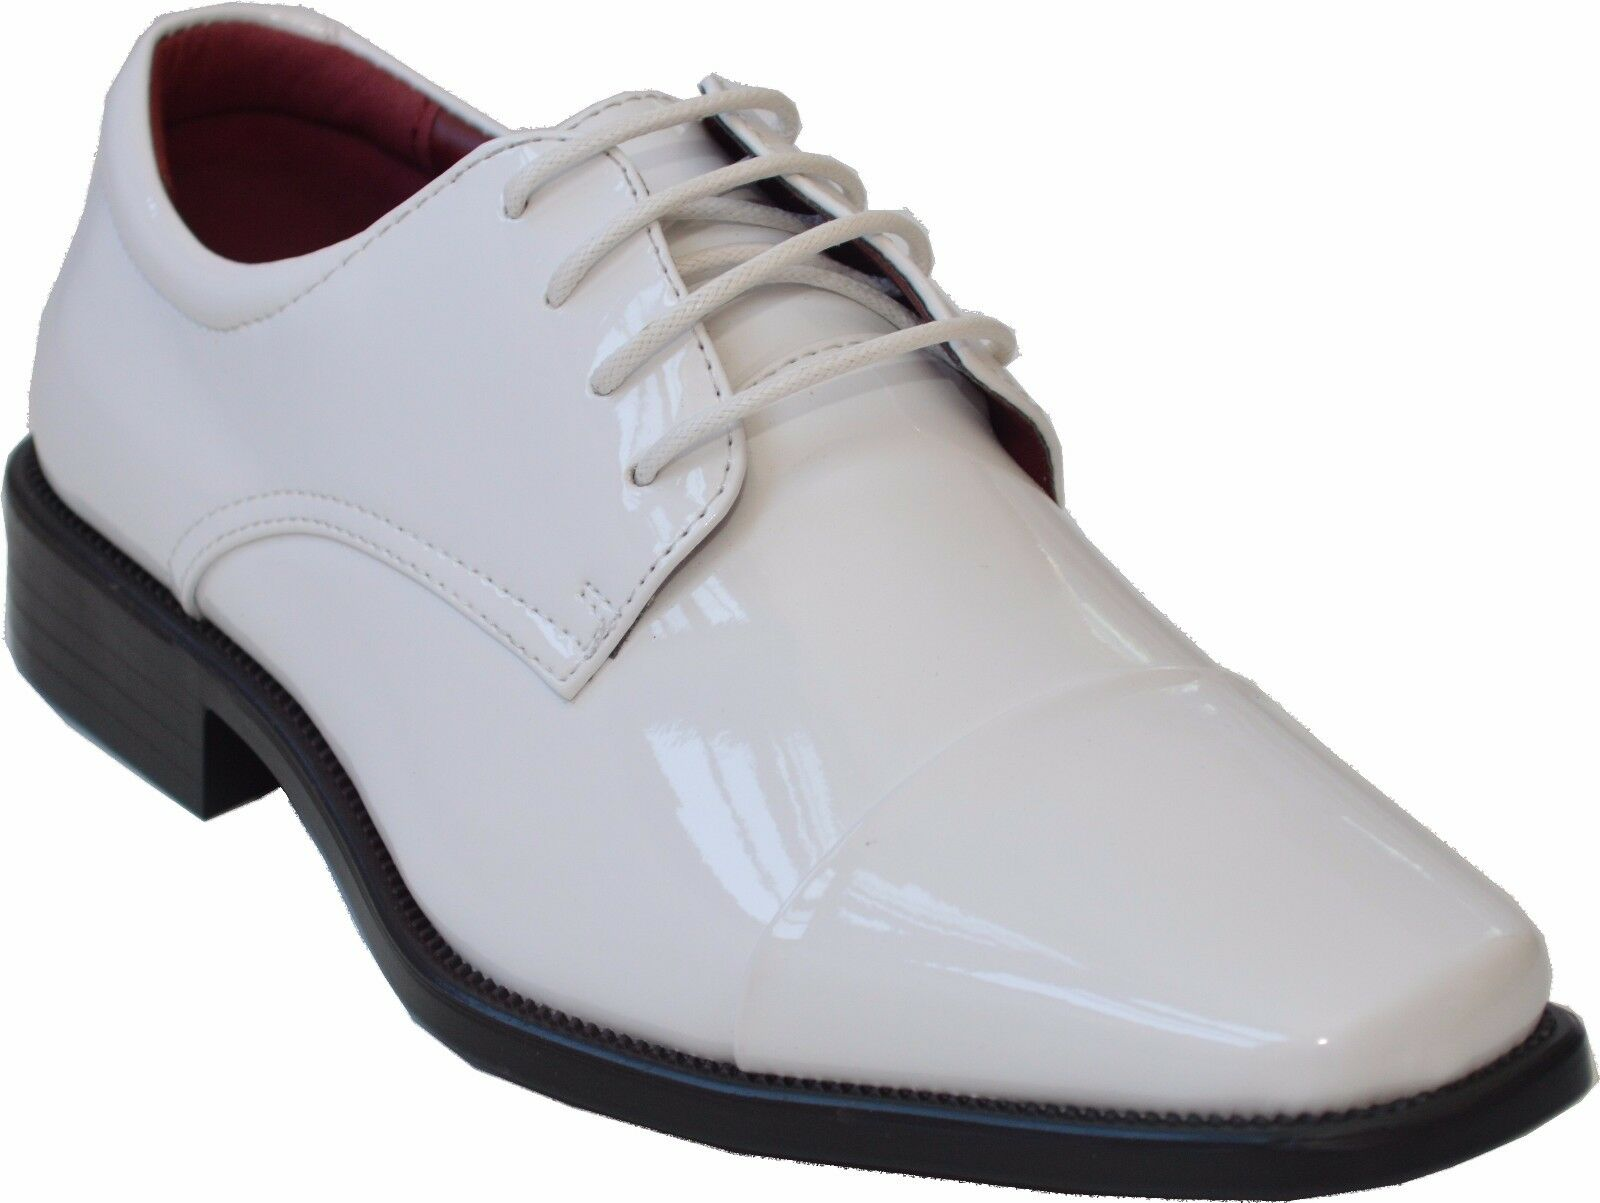 New Mens  Tuxedo  Formal  Lace Up Oxfords Church Party Dress White tuxi3